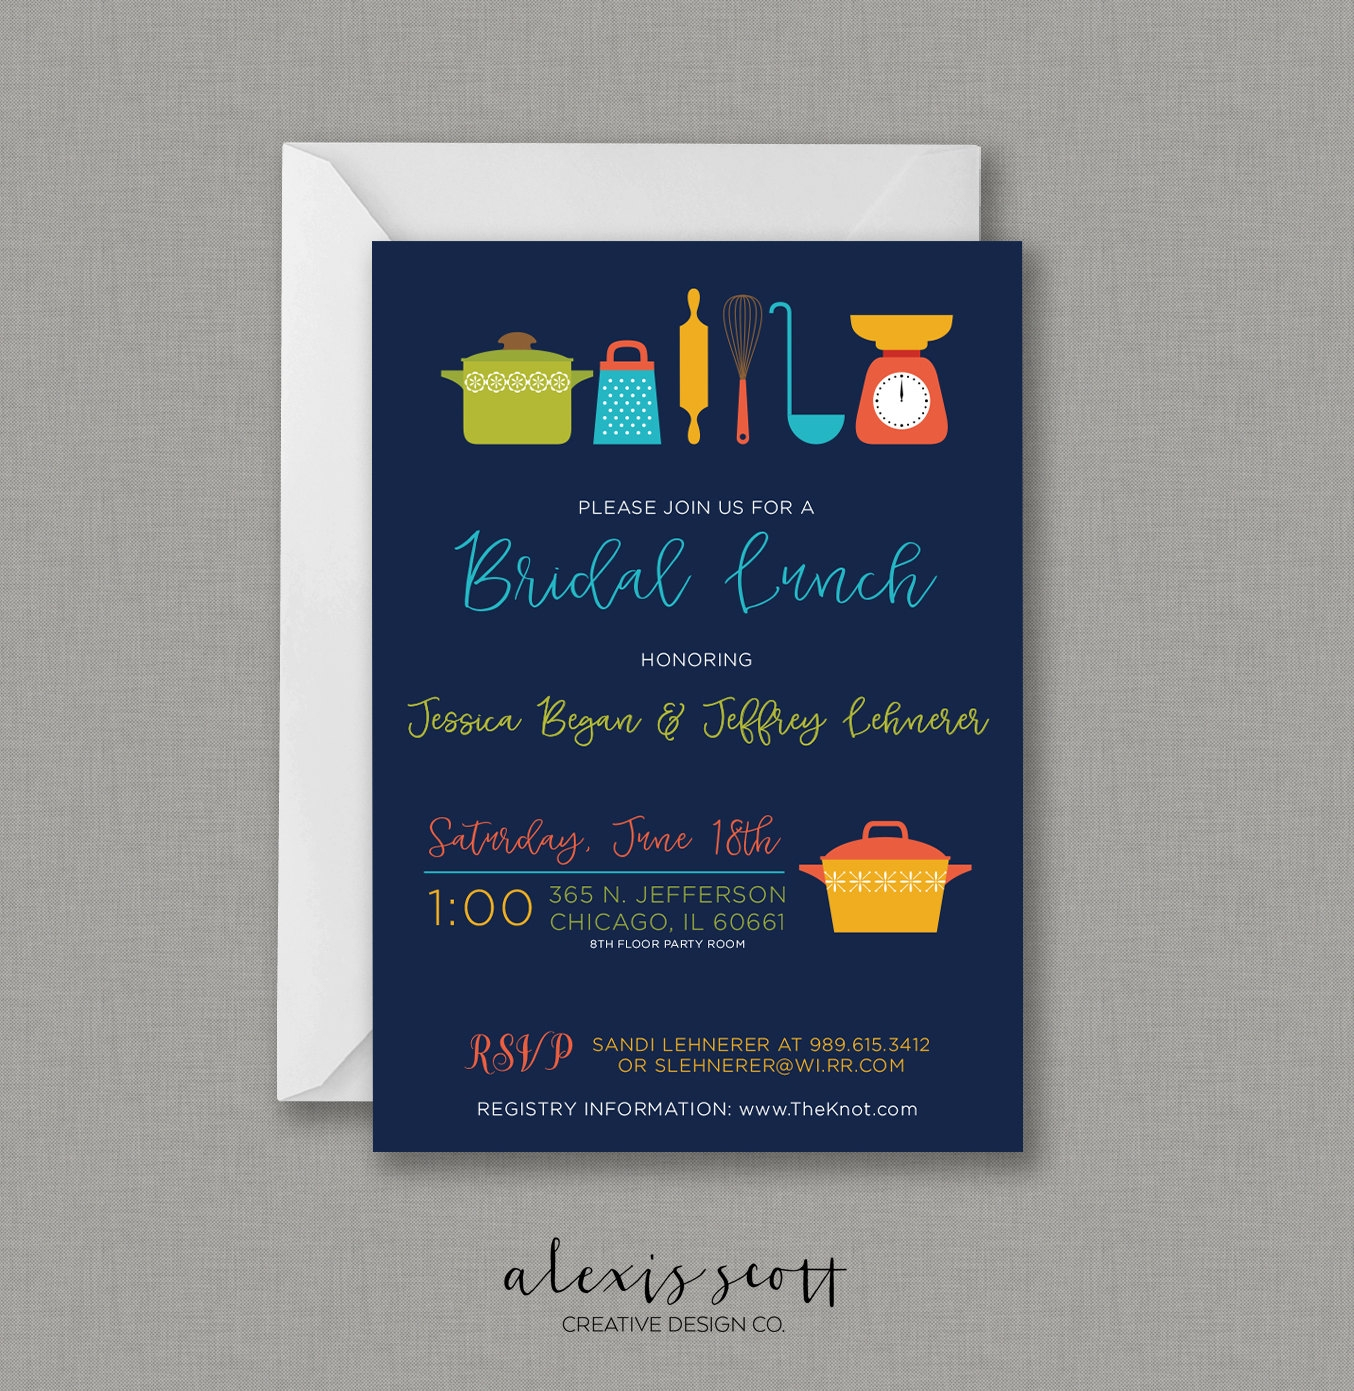 kitchen themed bridal lunch invitation